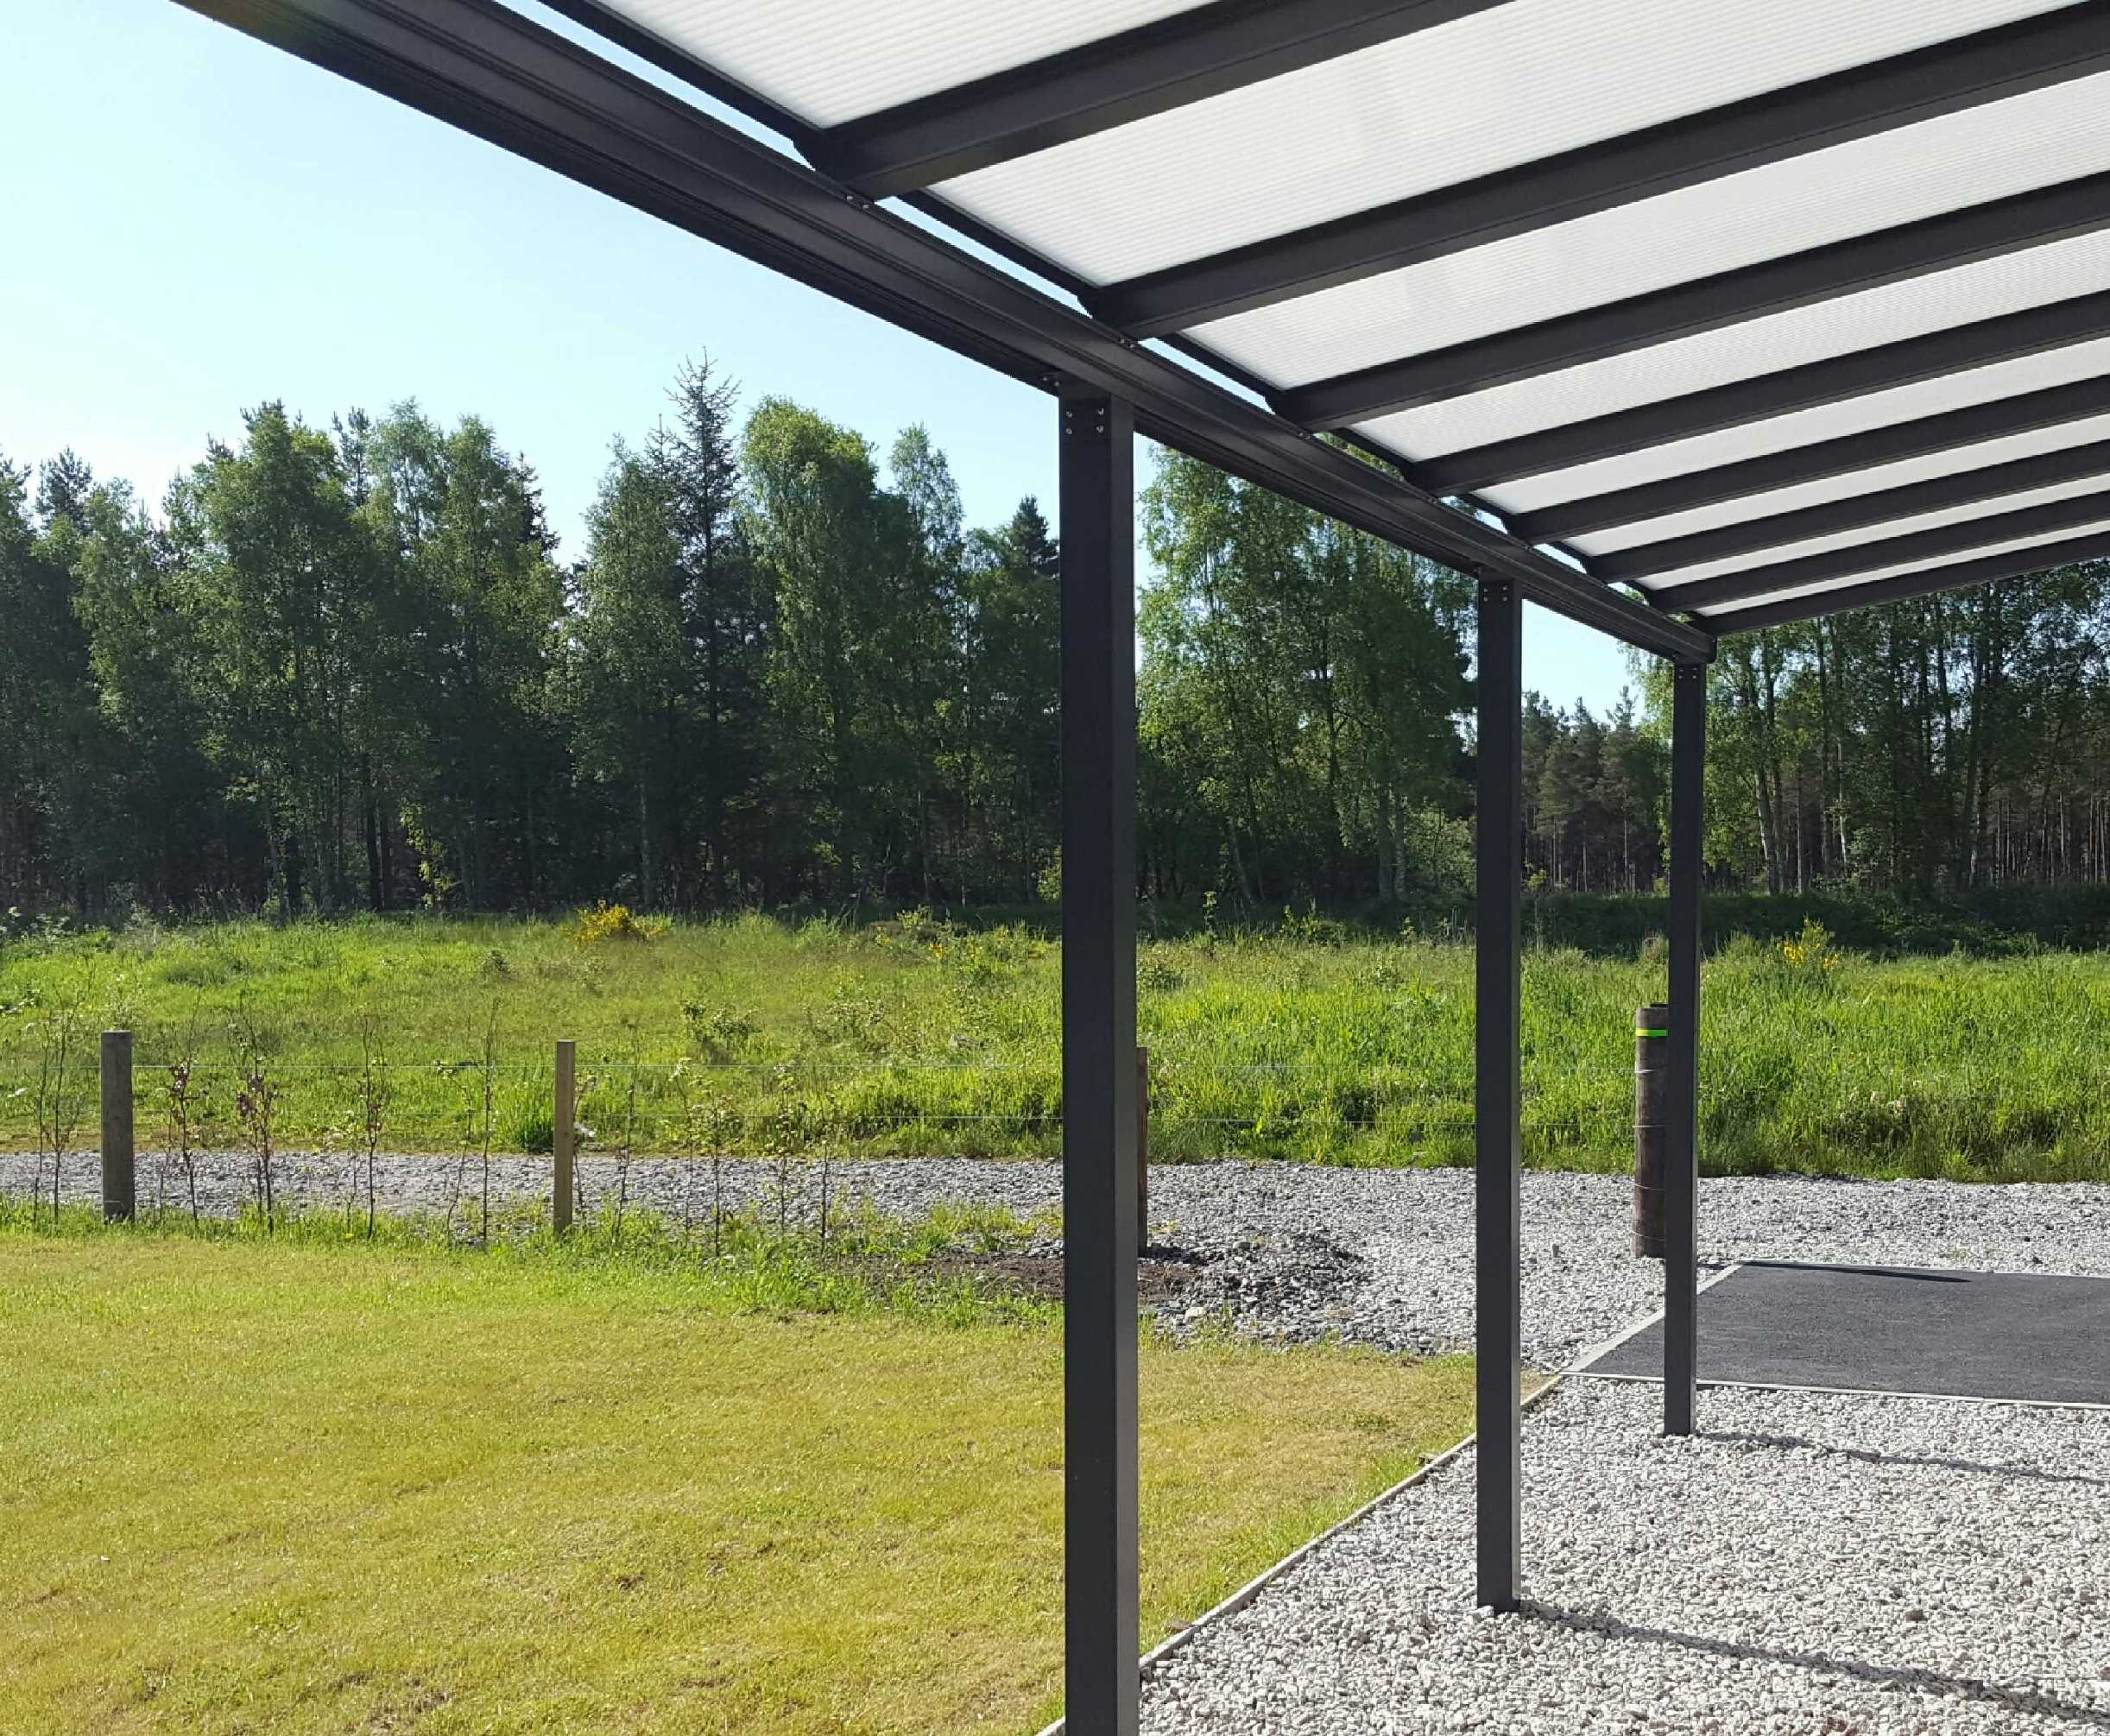 Omega Smart Lean-To Canopy, Anthracite Grey, 16mm Polycarbonate Glazing - 6.3m (W) x 2.0m (P), (4) Supporting Posts